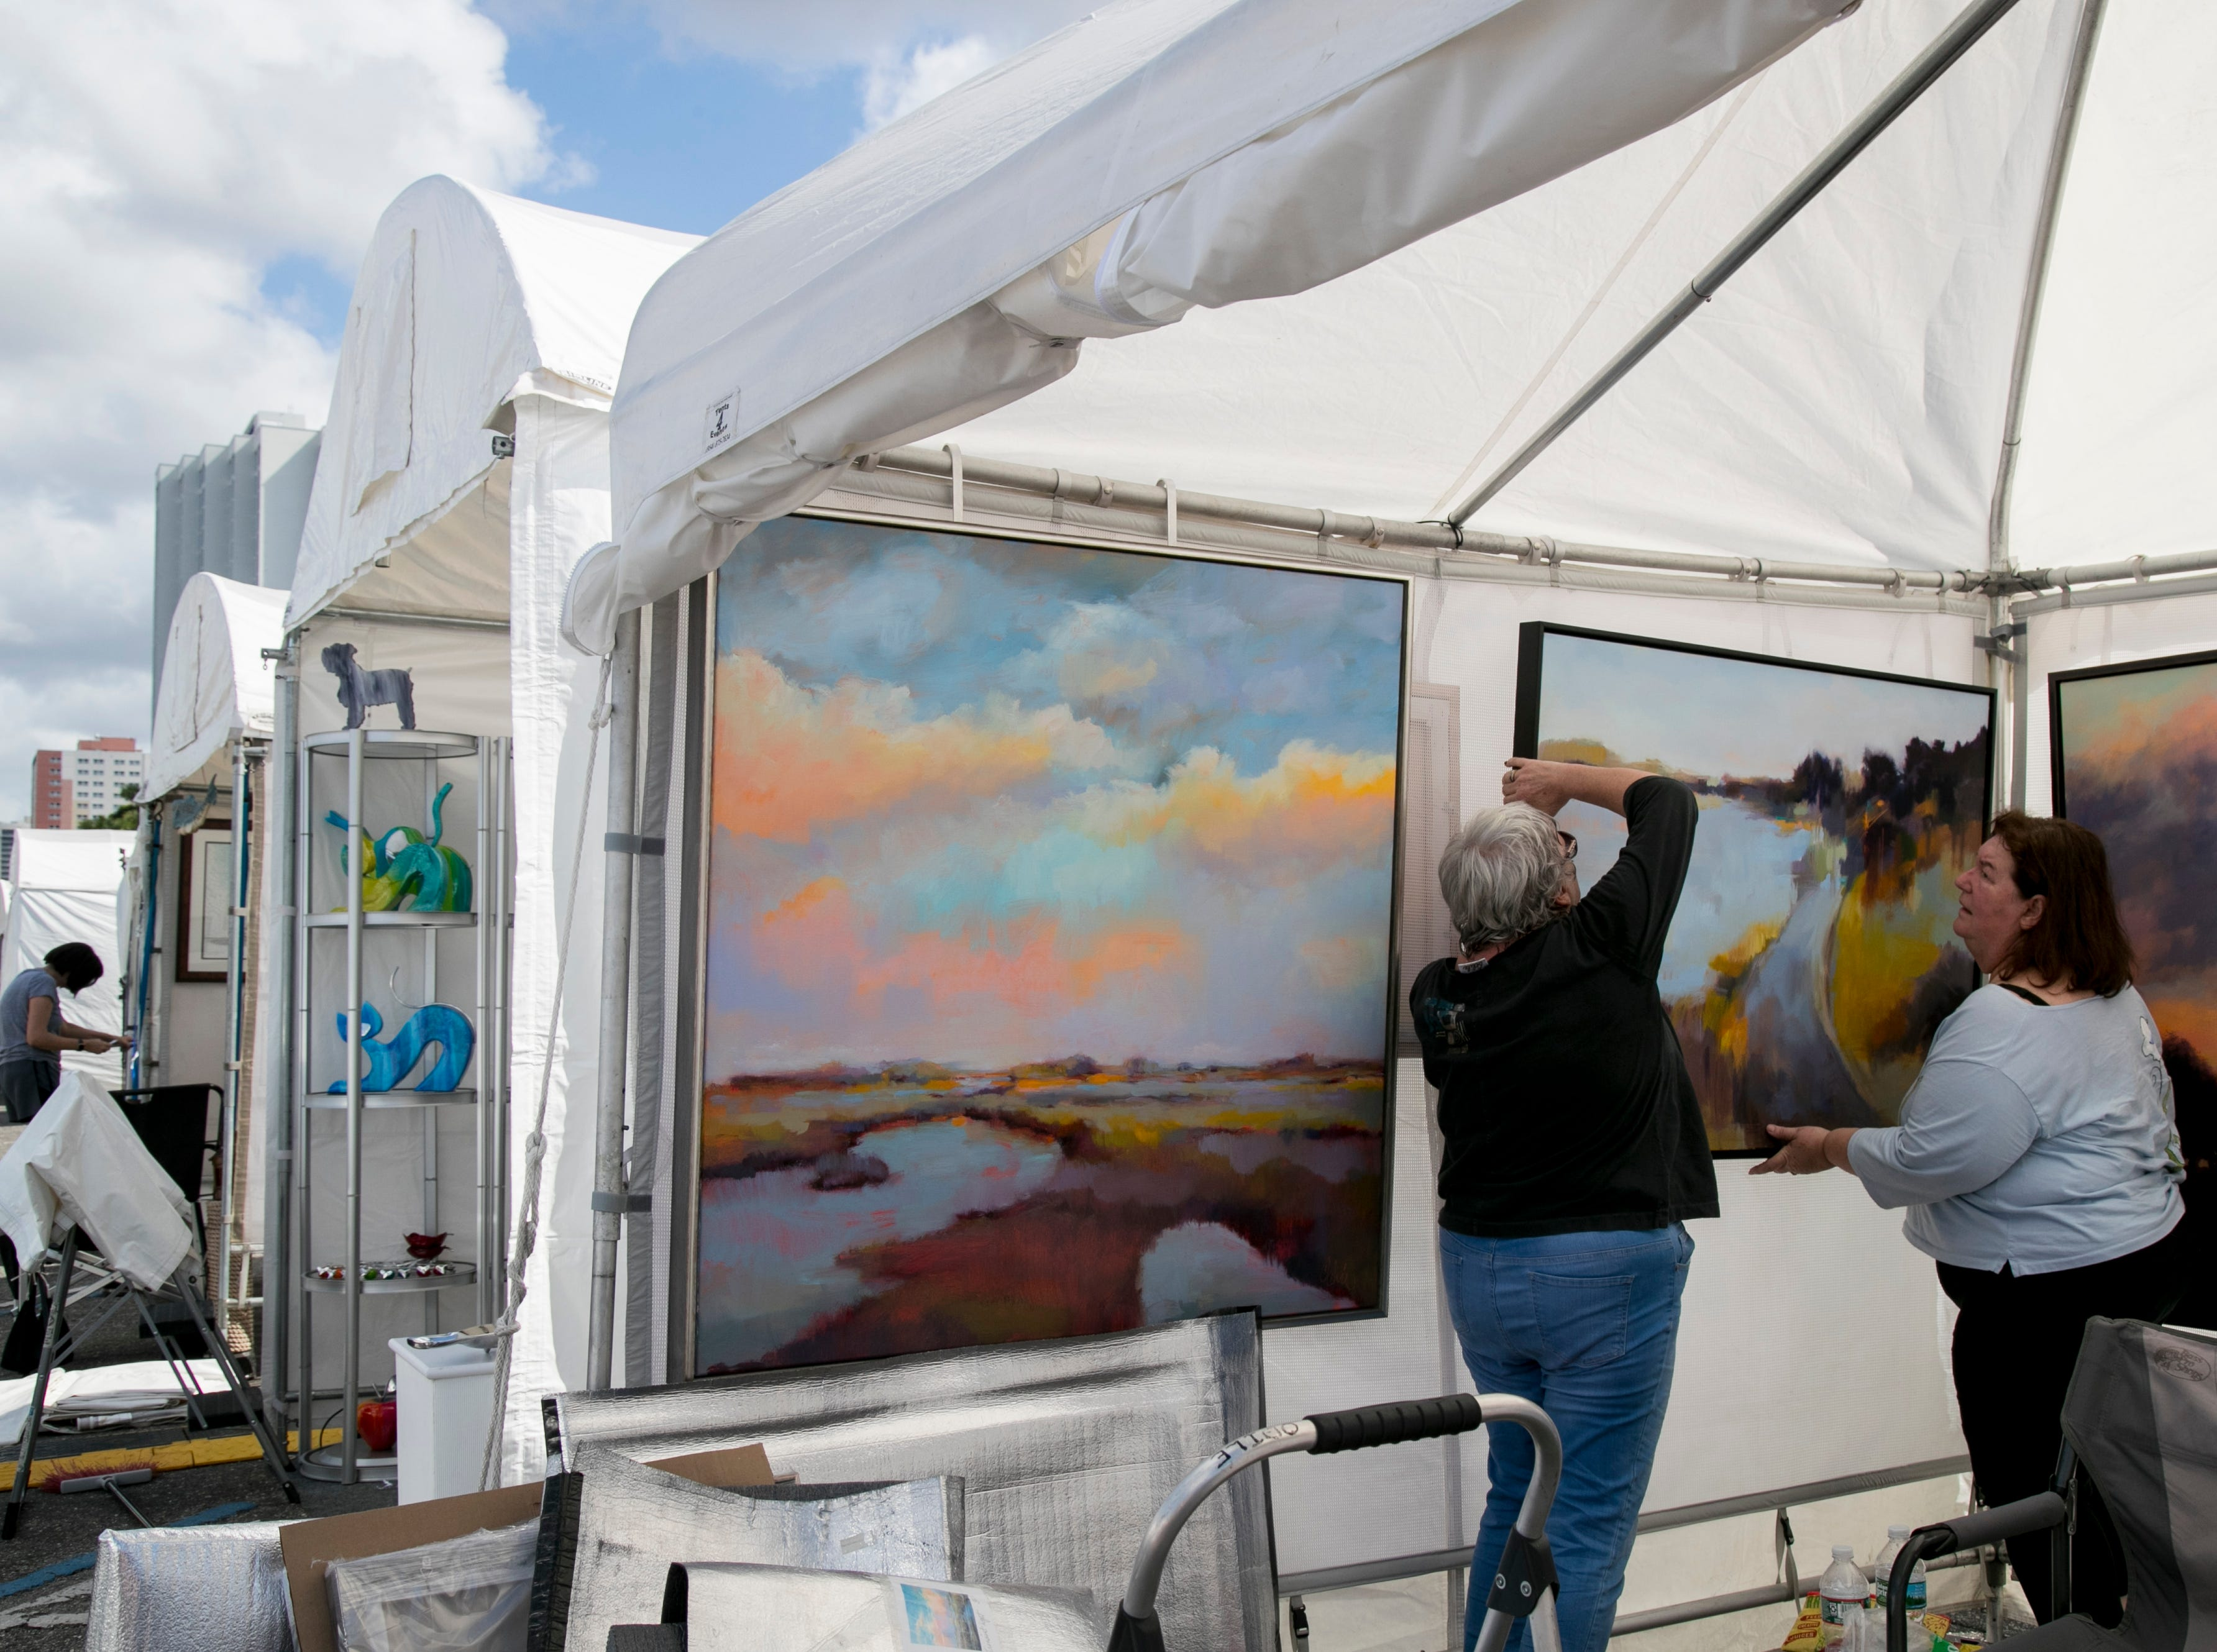 Claire Kimball, left, and artist Ruth Davis, right, of Harwich, Mass., hang a painting while setting up for ArtFest in downtown Fort Myers on Friday, Feb. 1, 2019. ArtFest is open Saturday and Sunday from 10 am to 5 pm.